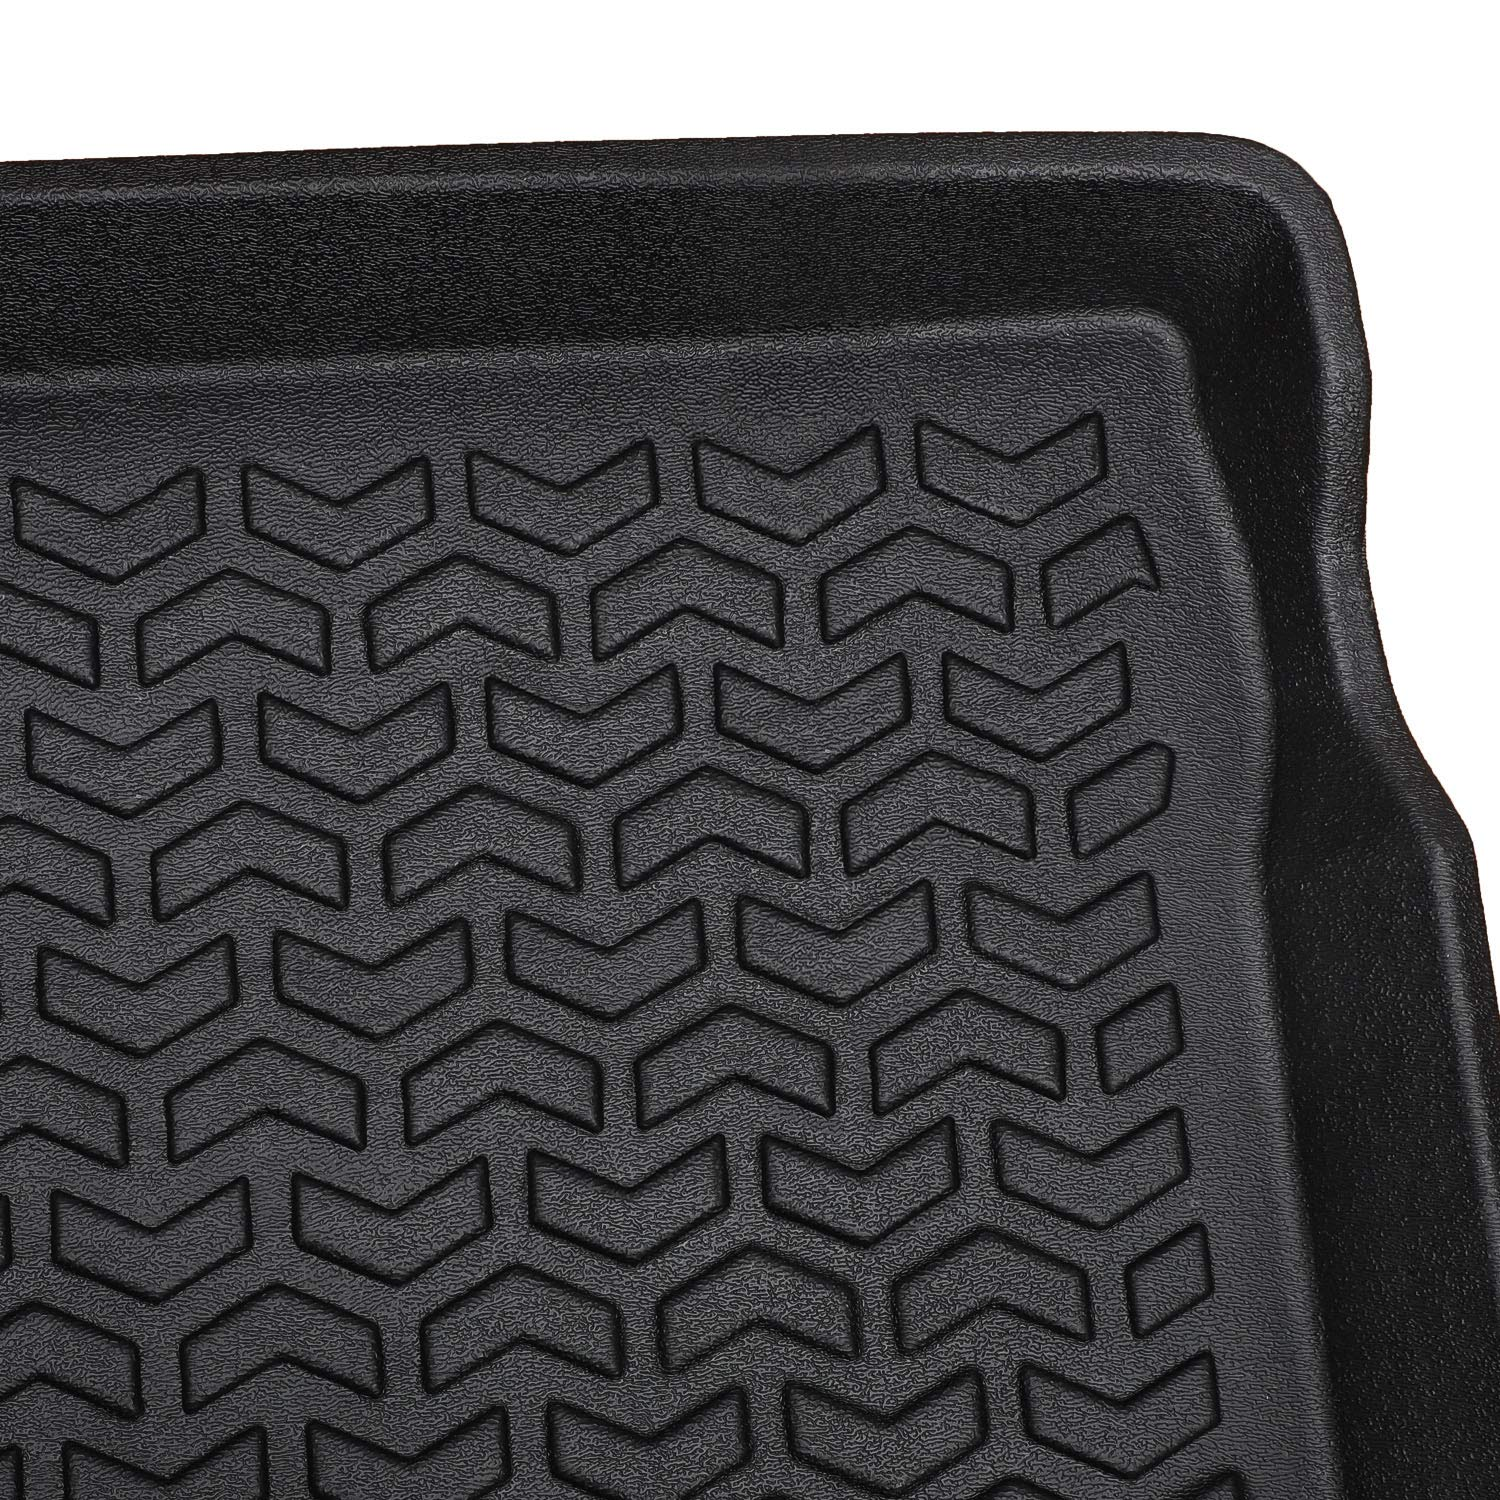 E-cowlboy Cargo Liner Cargo Tray Mat for Jeep Wrangler JL 2018~2020 Black Rubber Trunk Floor Mat Custom Fit All Weather Odorless Unlimited 4-Door